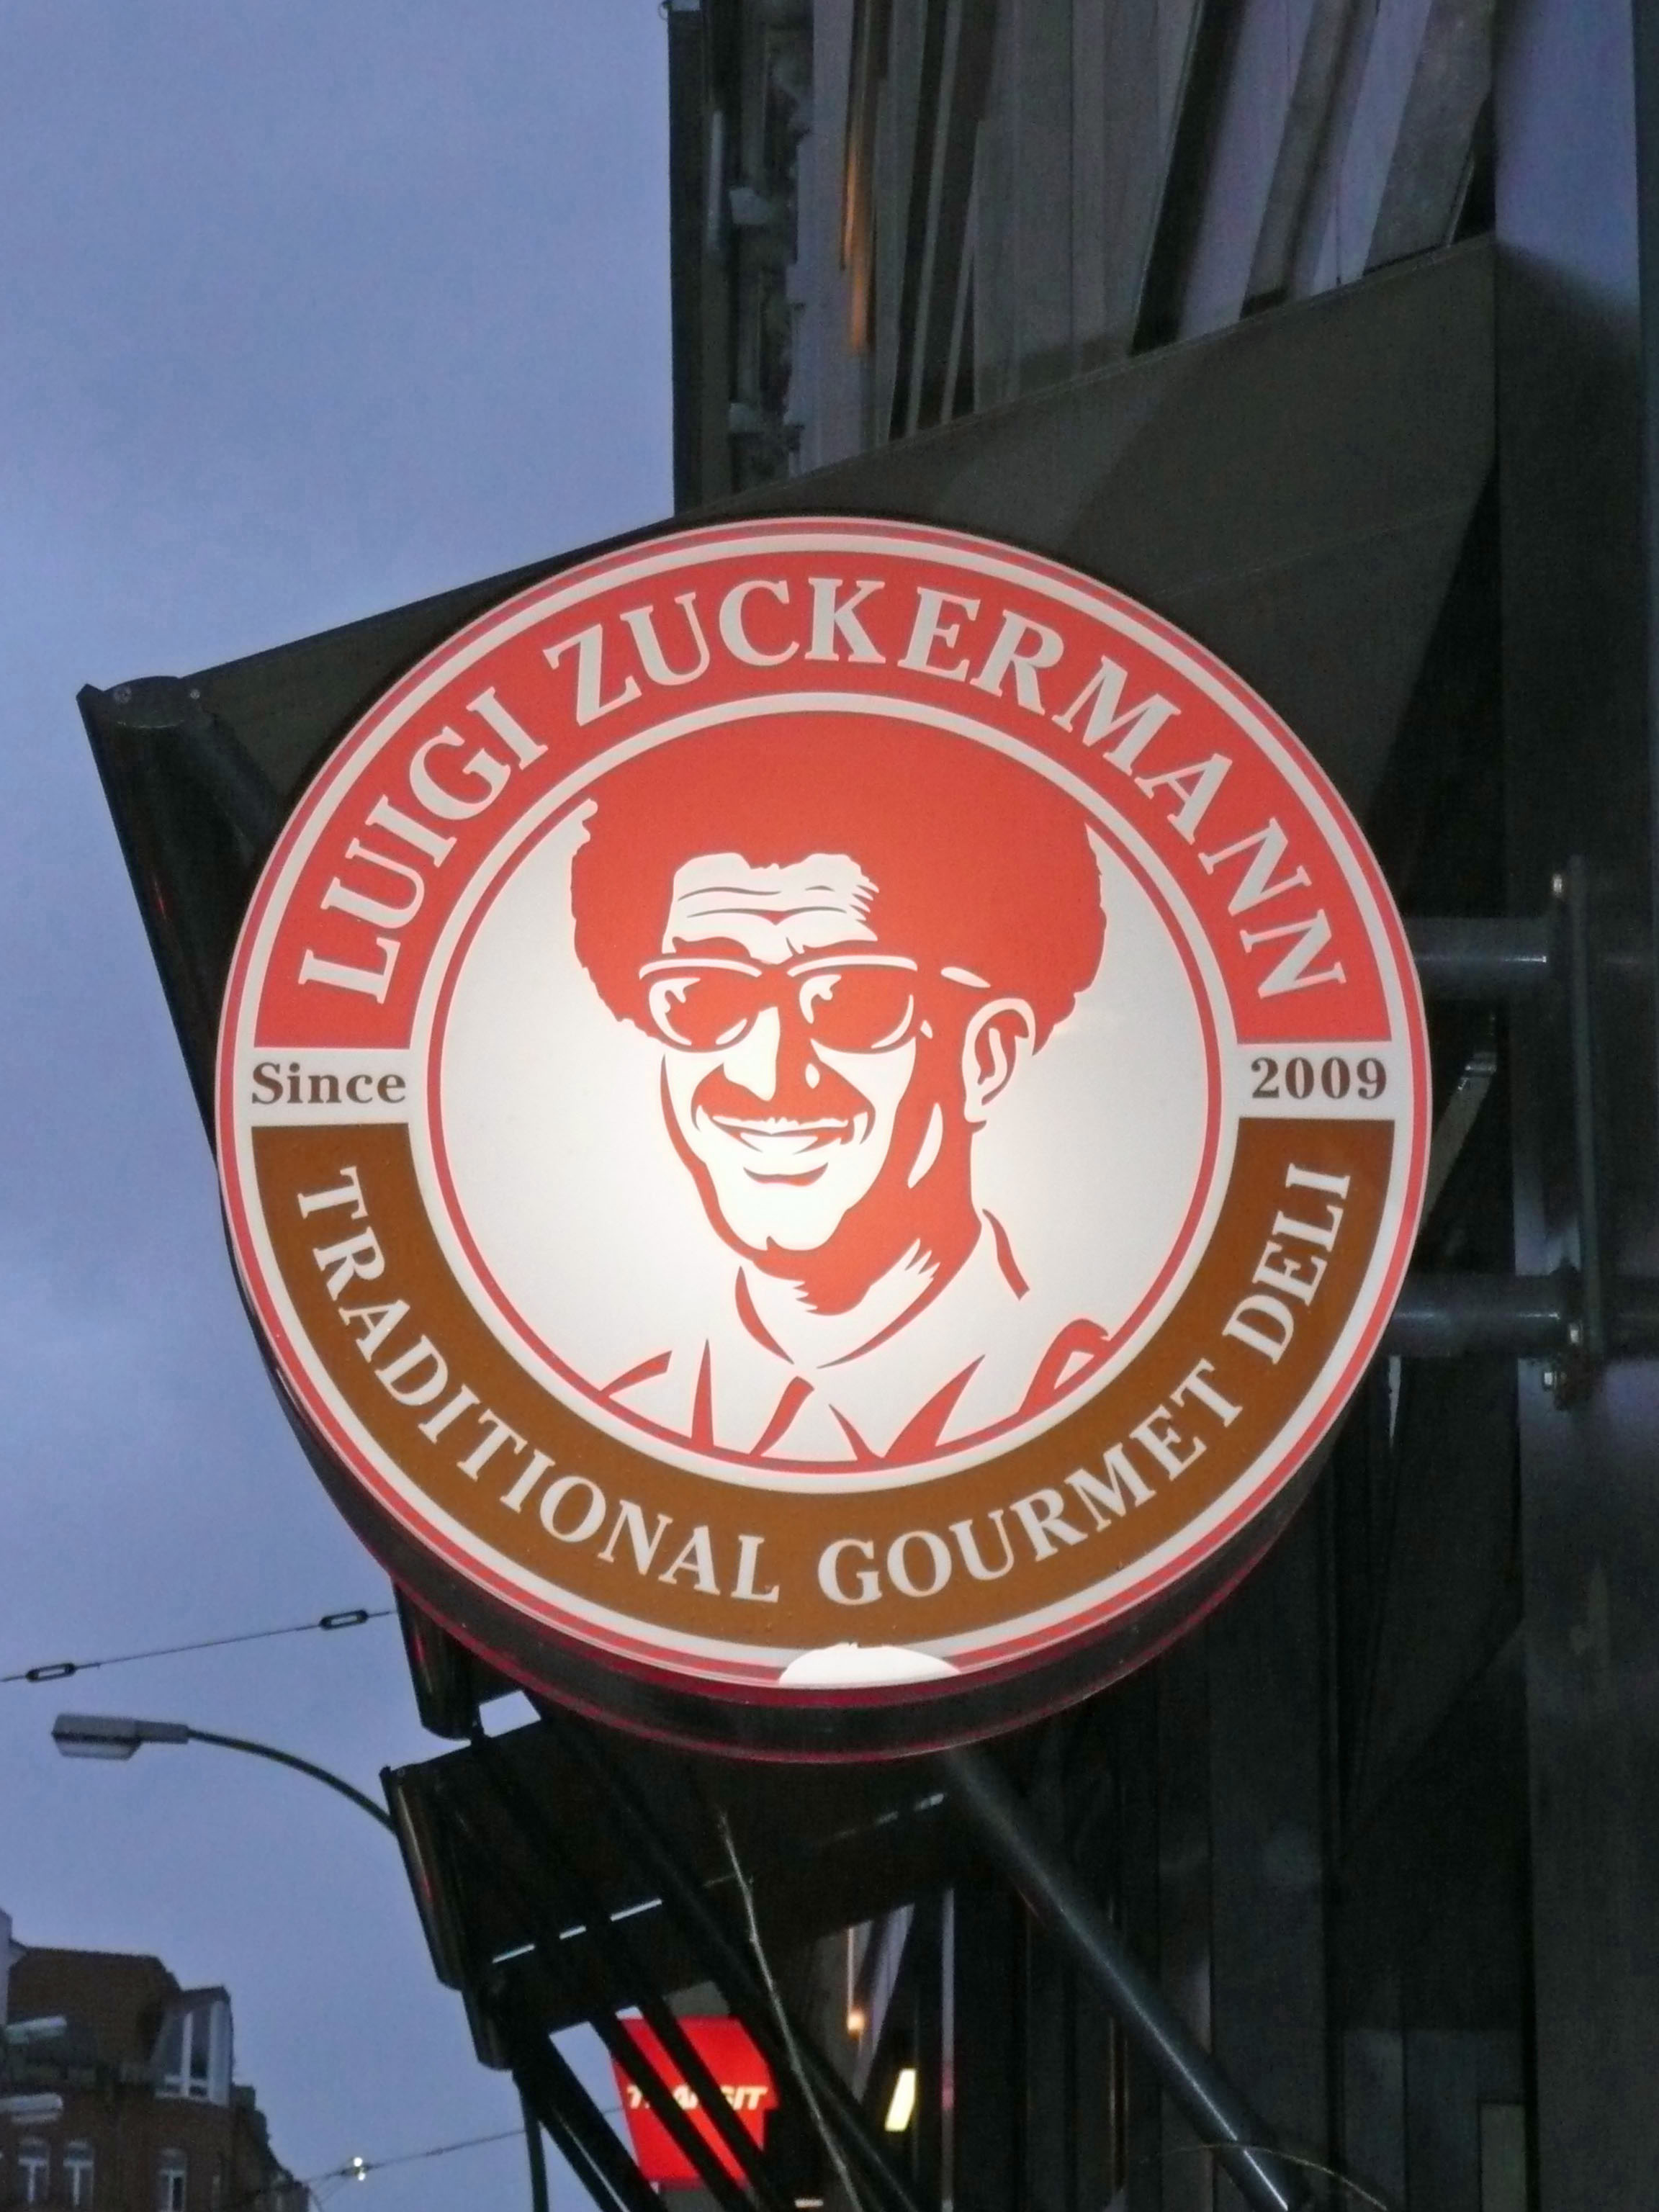 The sign for Luigi Zuckermann, a deli in Berlin, lit up at dusk